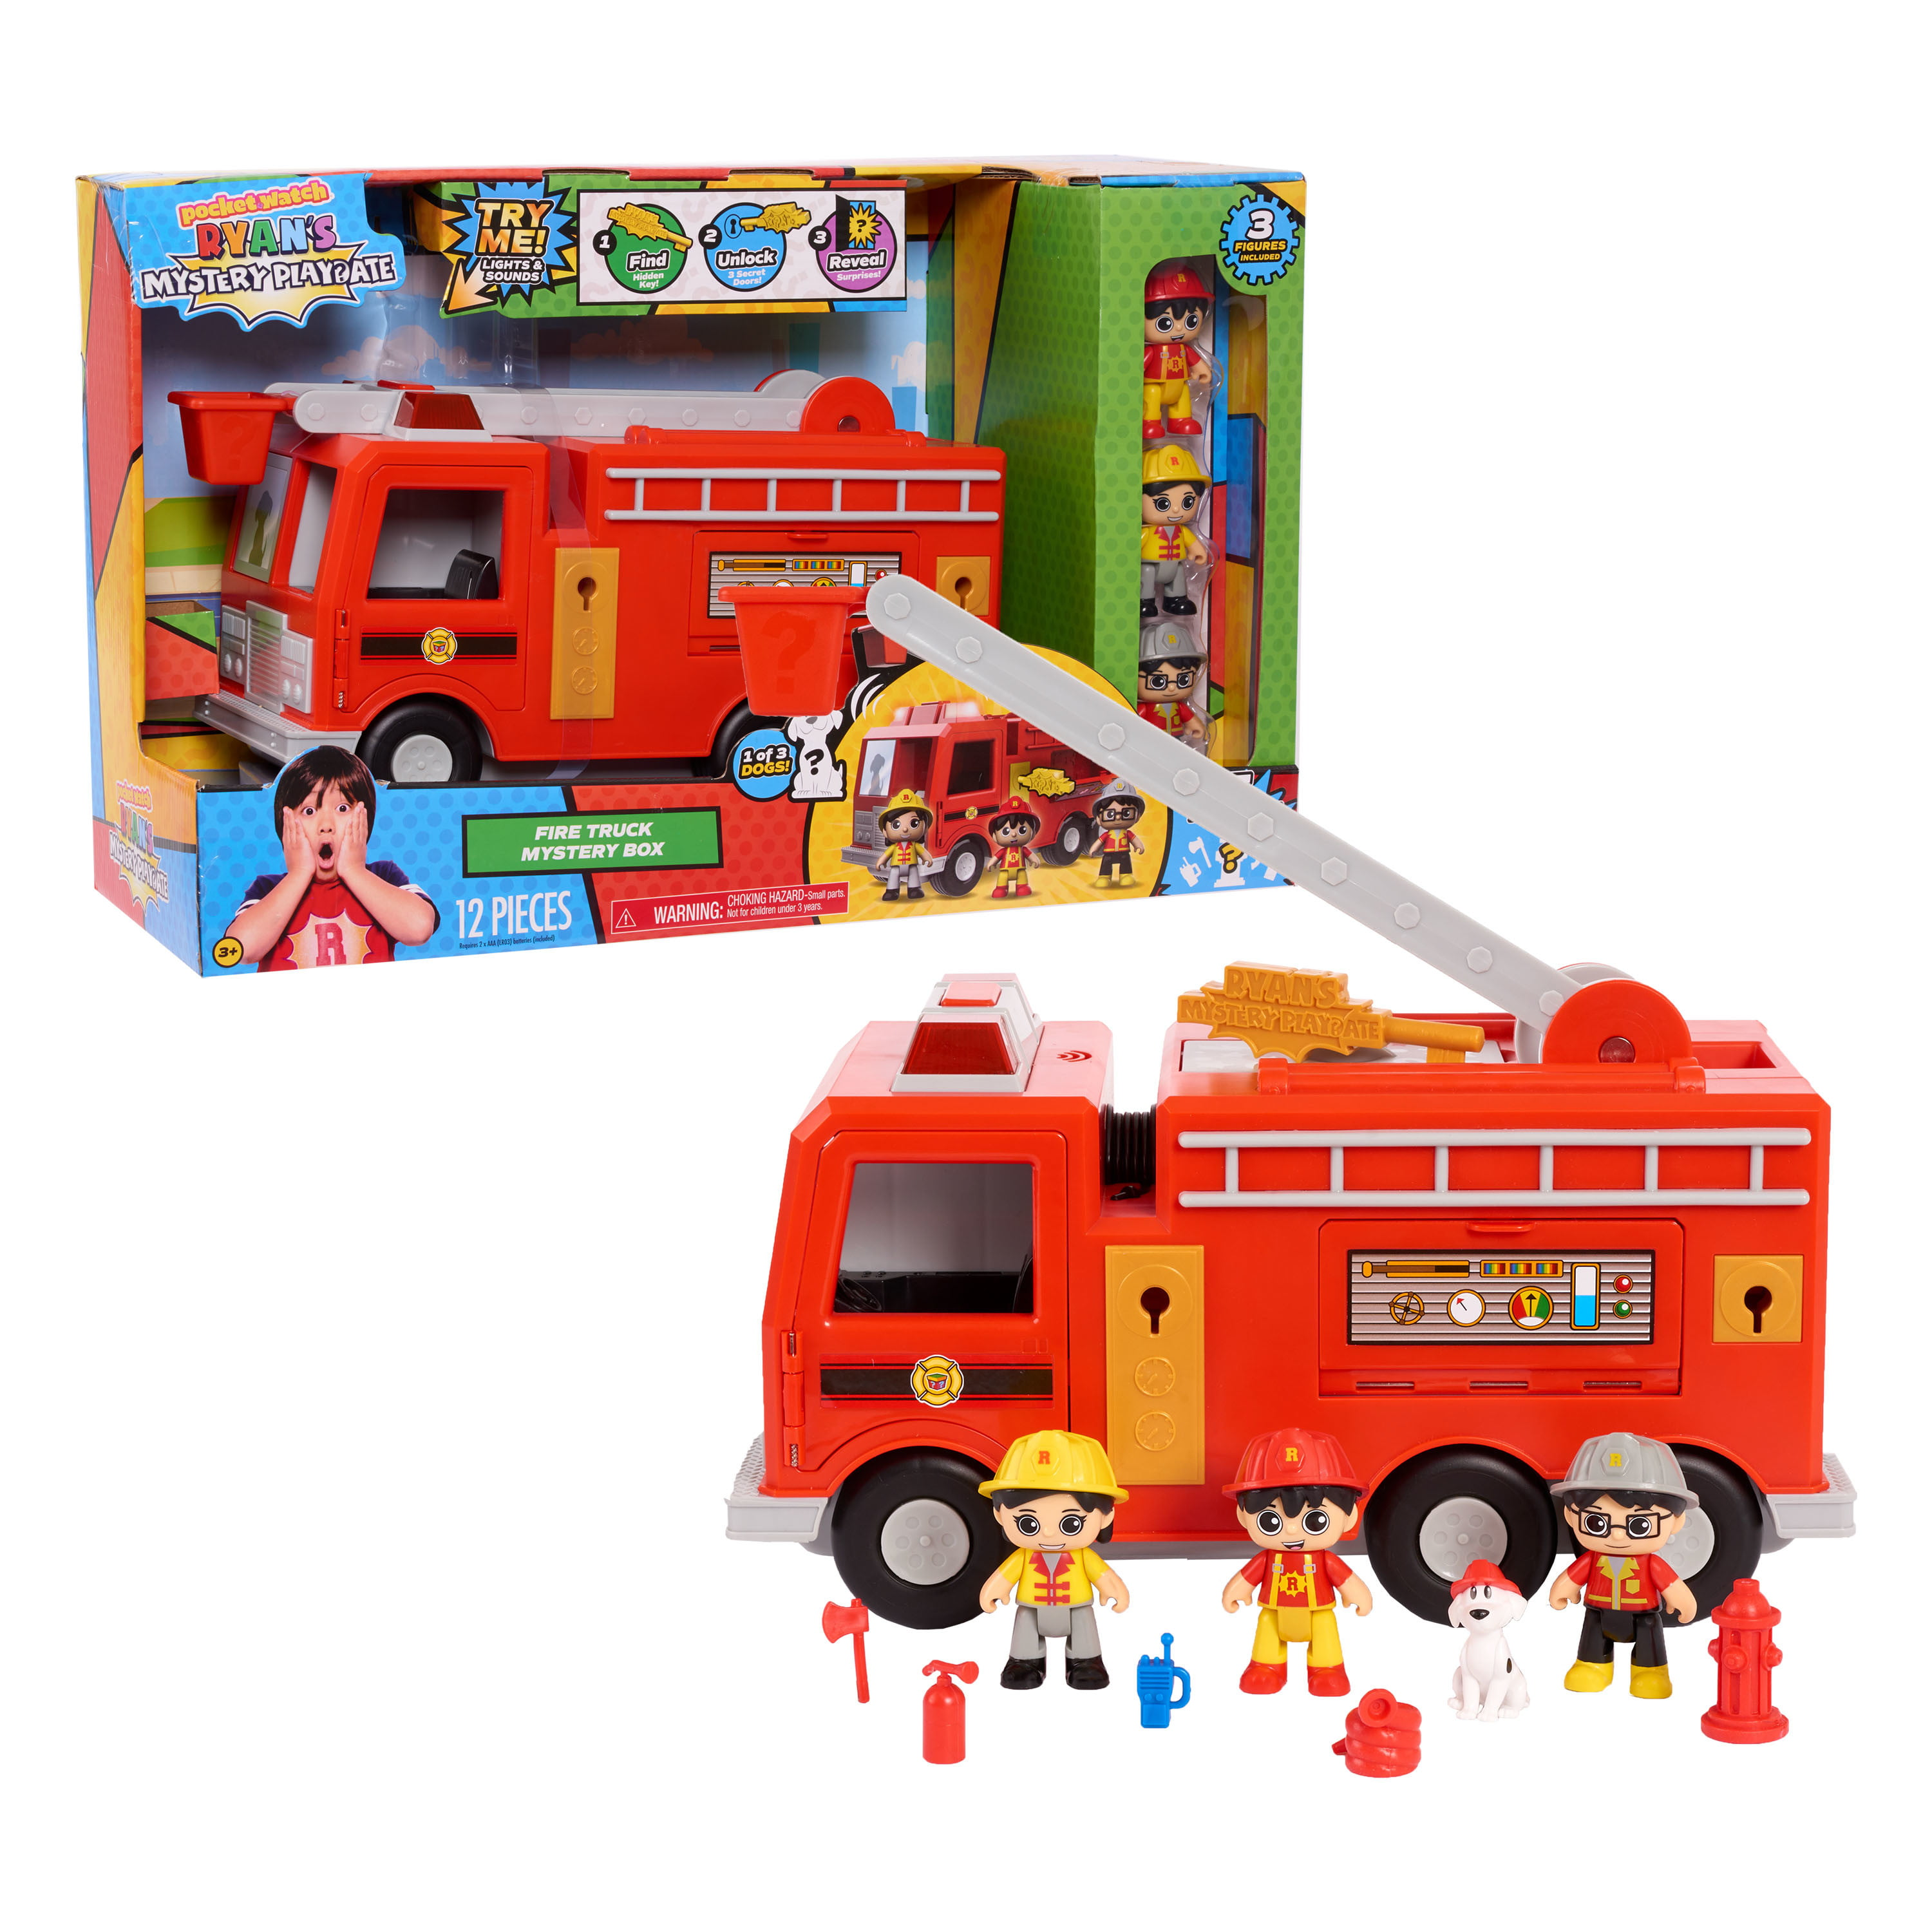 Ryan's Mystery Playdate Fire Truck Mystery Box, Vehicles, Ages 3 Up And Up, By Just Play